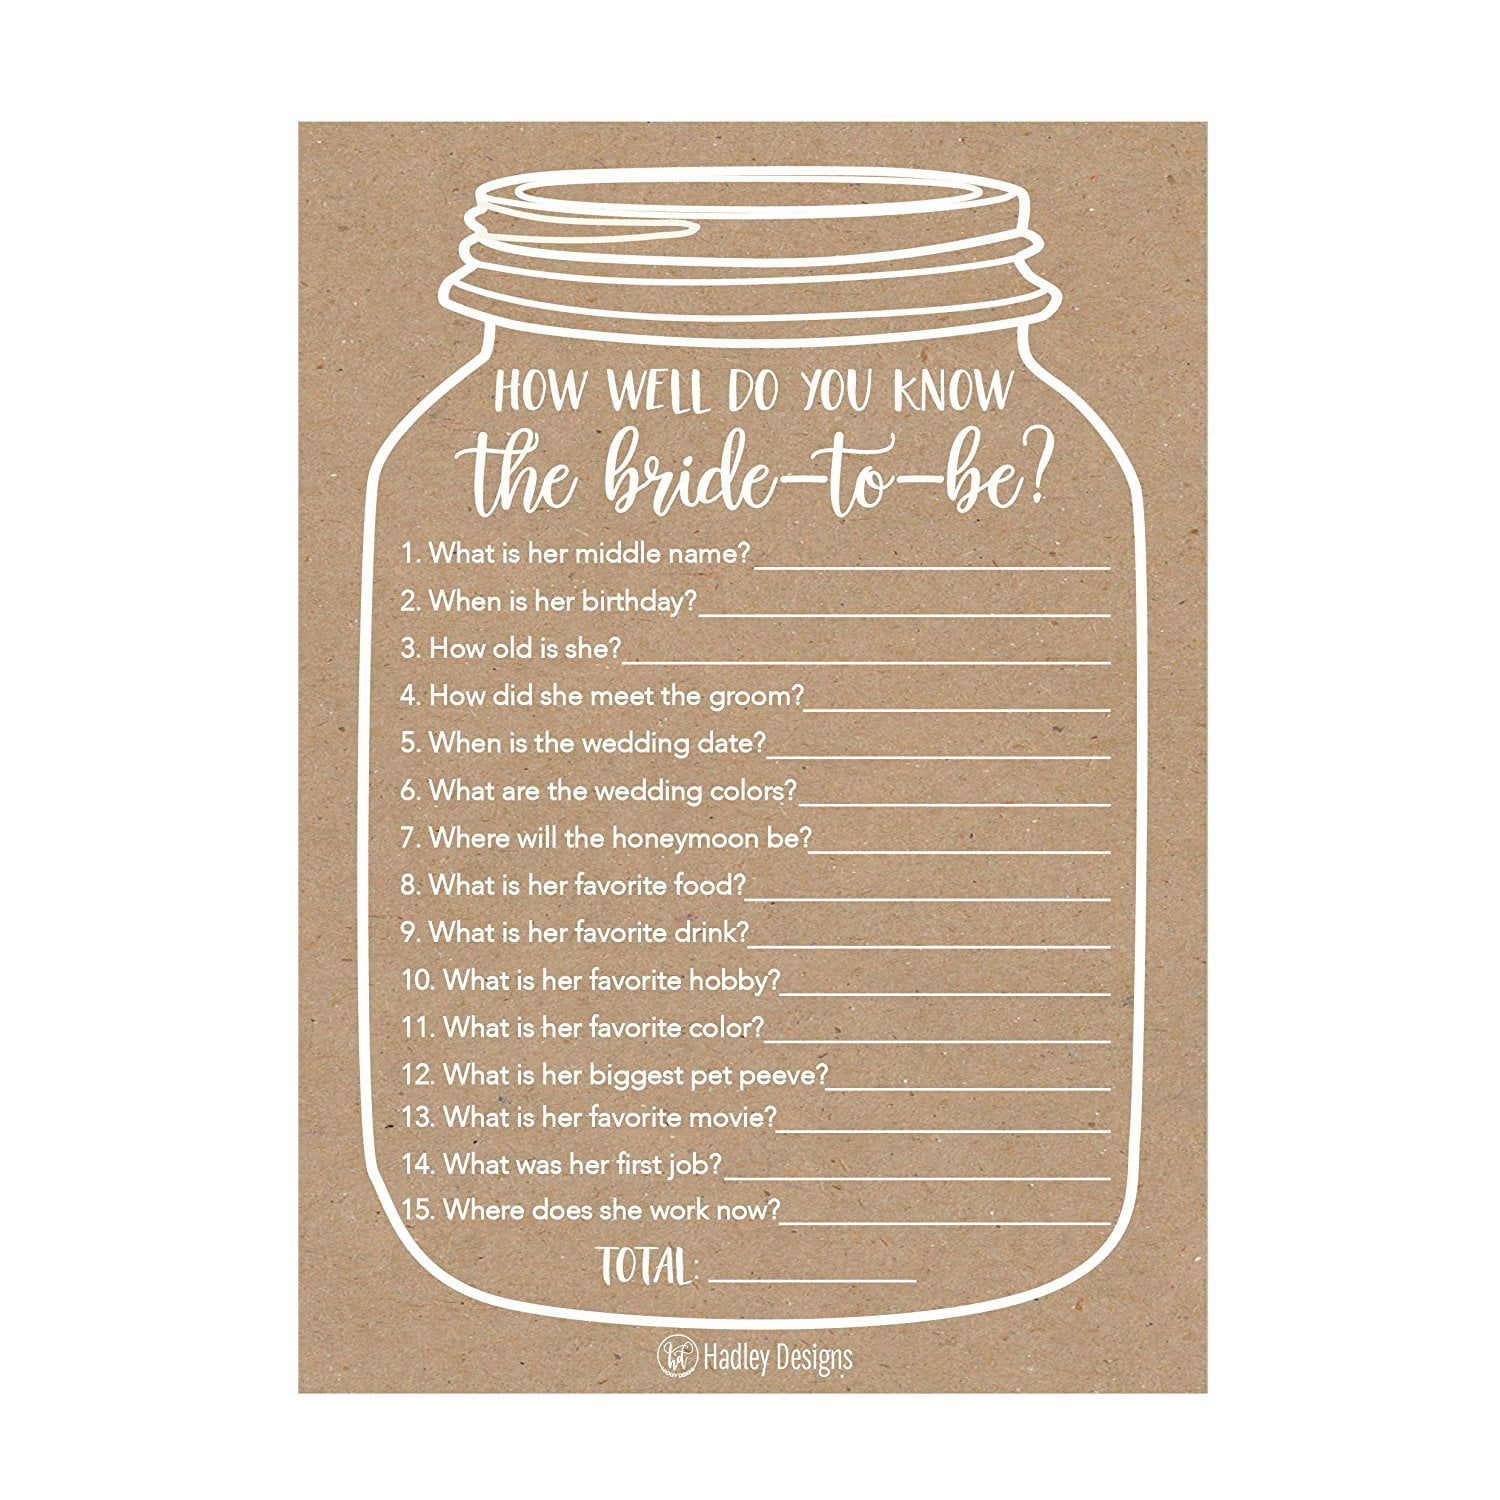 Bride And Groom Questionnaire: 25 Cute Rustic How Well Do You Know The Bride Bridal